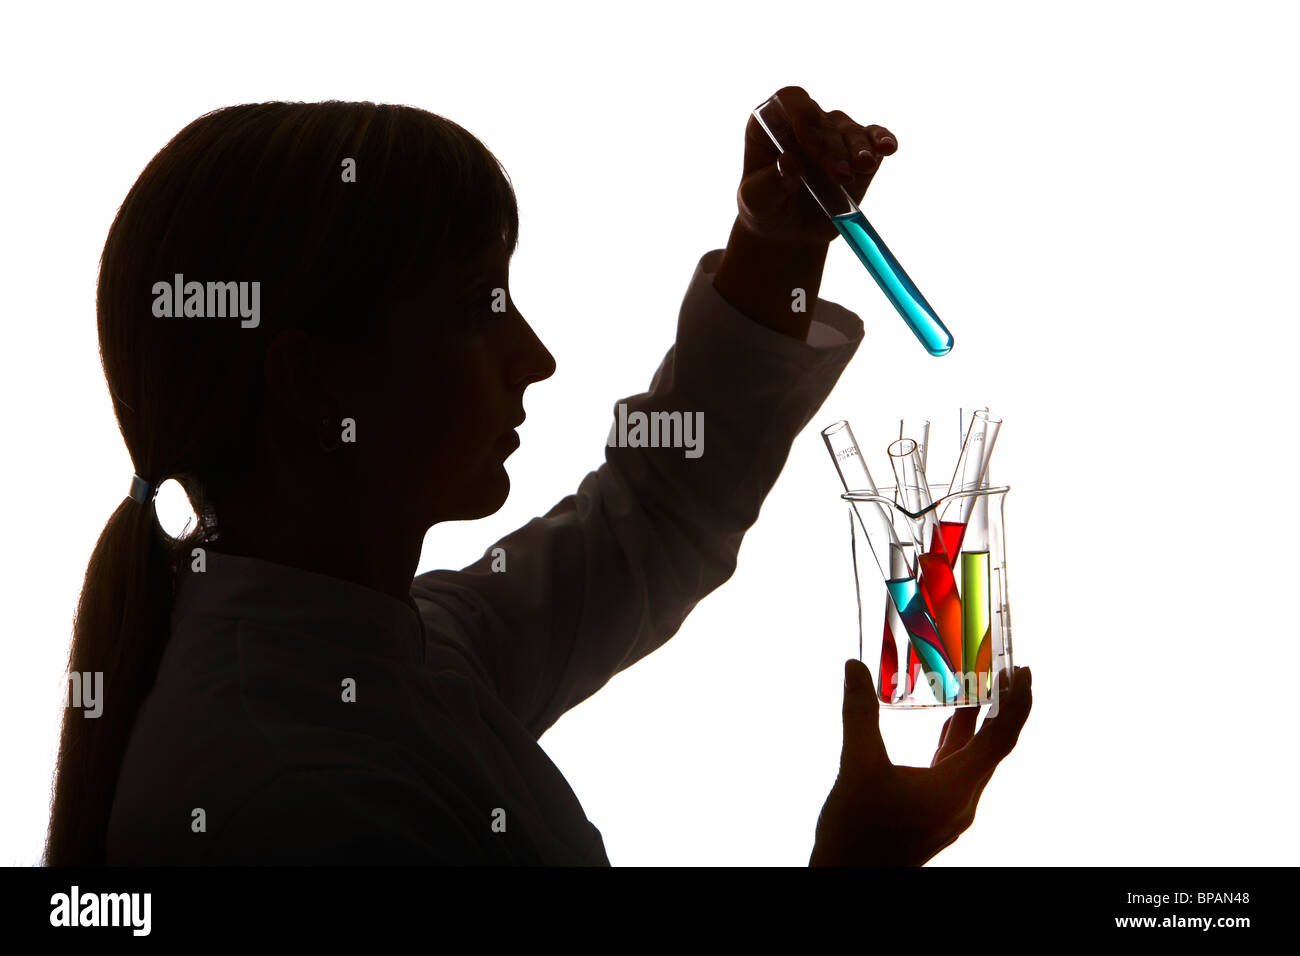 Laboratory assistants working in  a chemical laboratory. Working with different chemicals in test tubes. - Stock Image